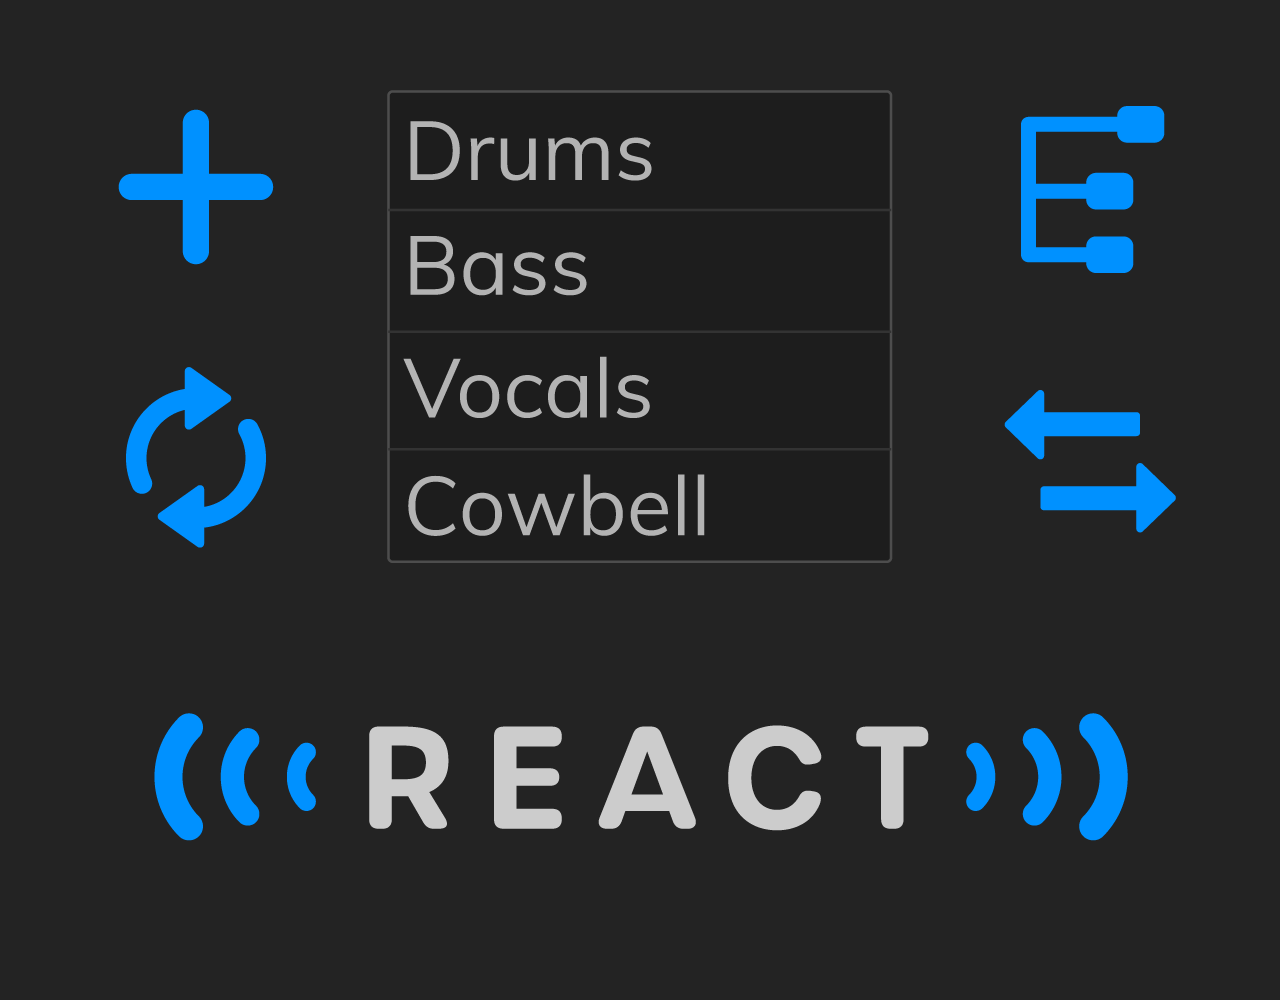 The reactor select screen from the FreqReact user interface